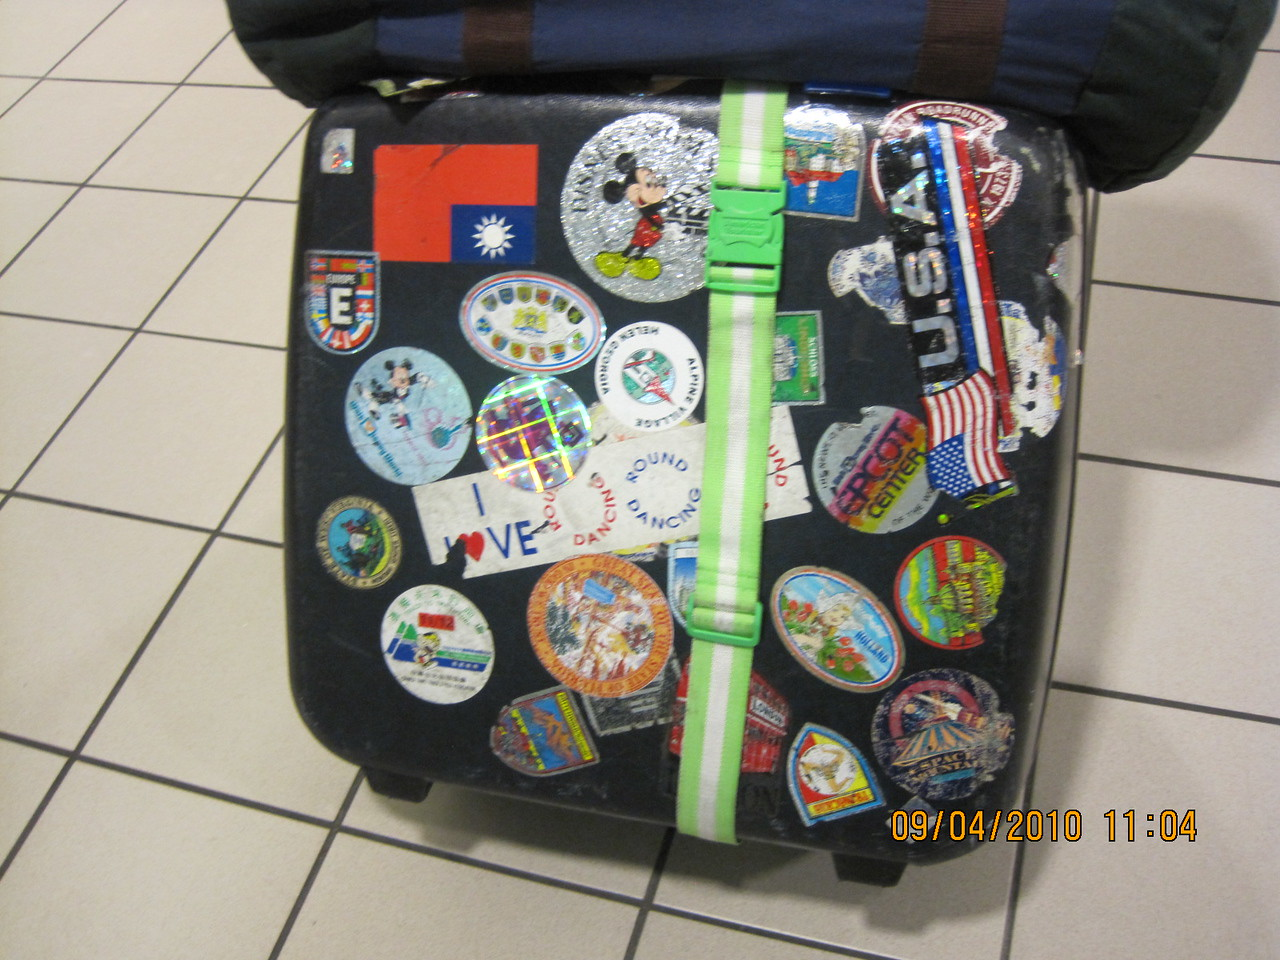 SJ's worldly travel stickers.